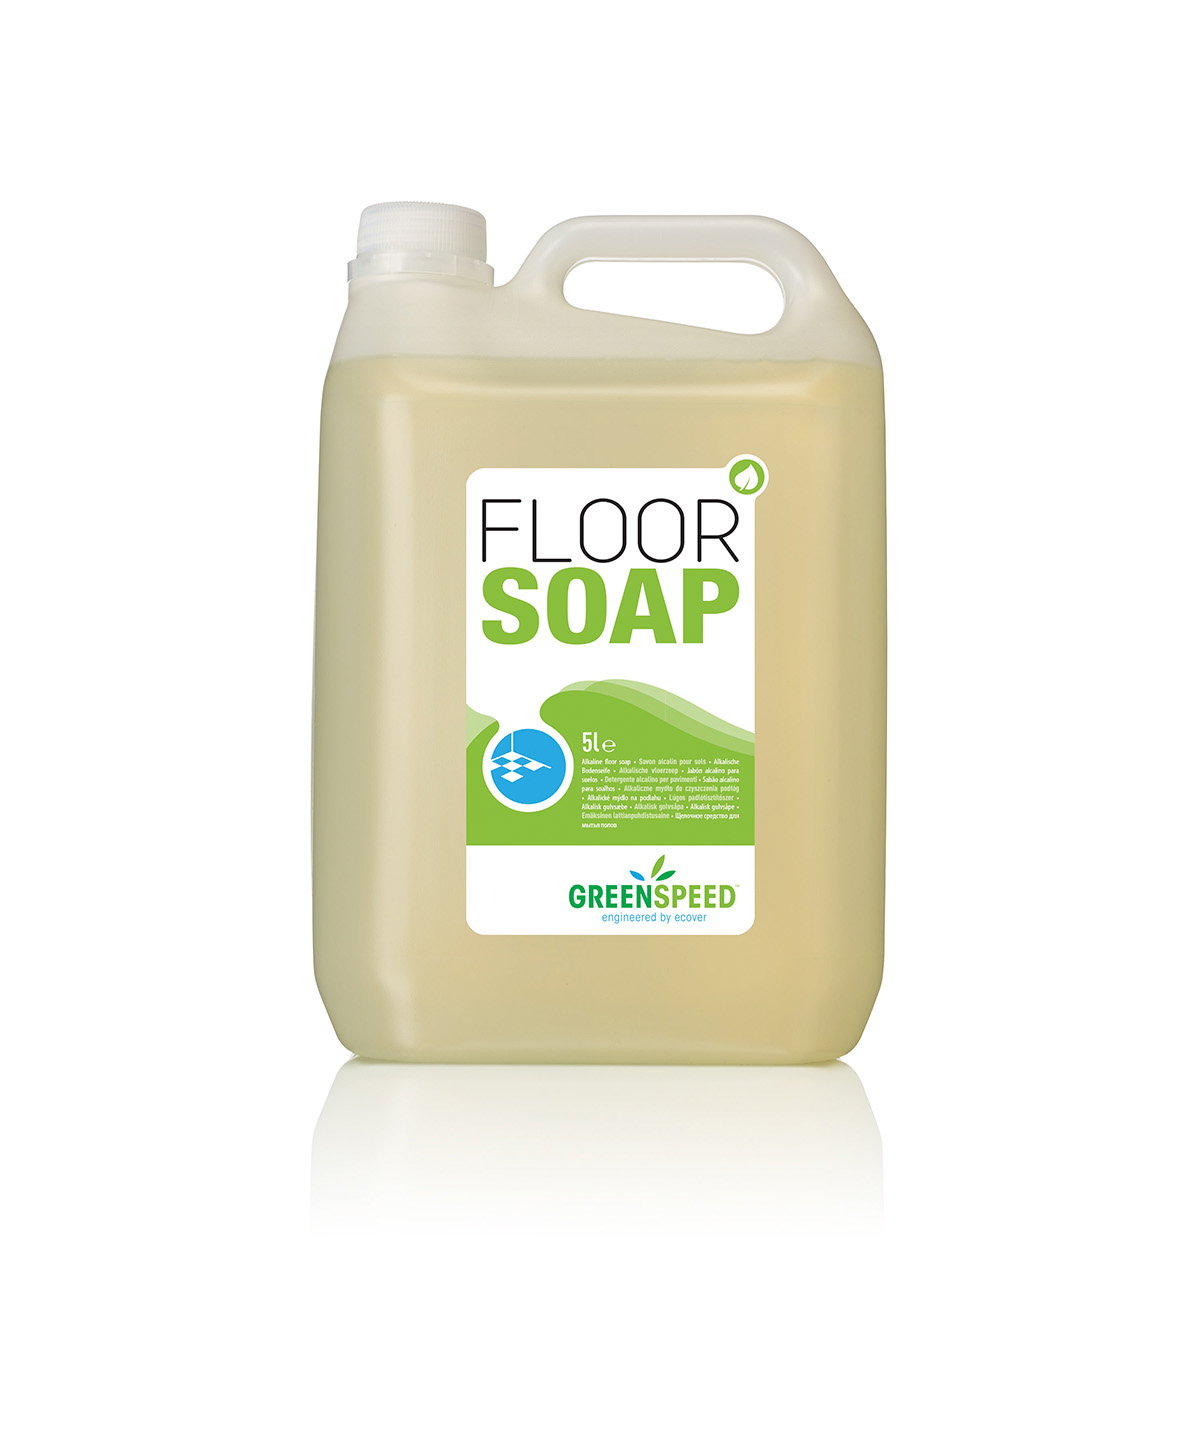 greenspeed_floor_soap_5l